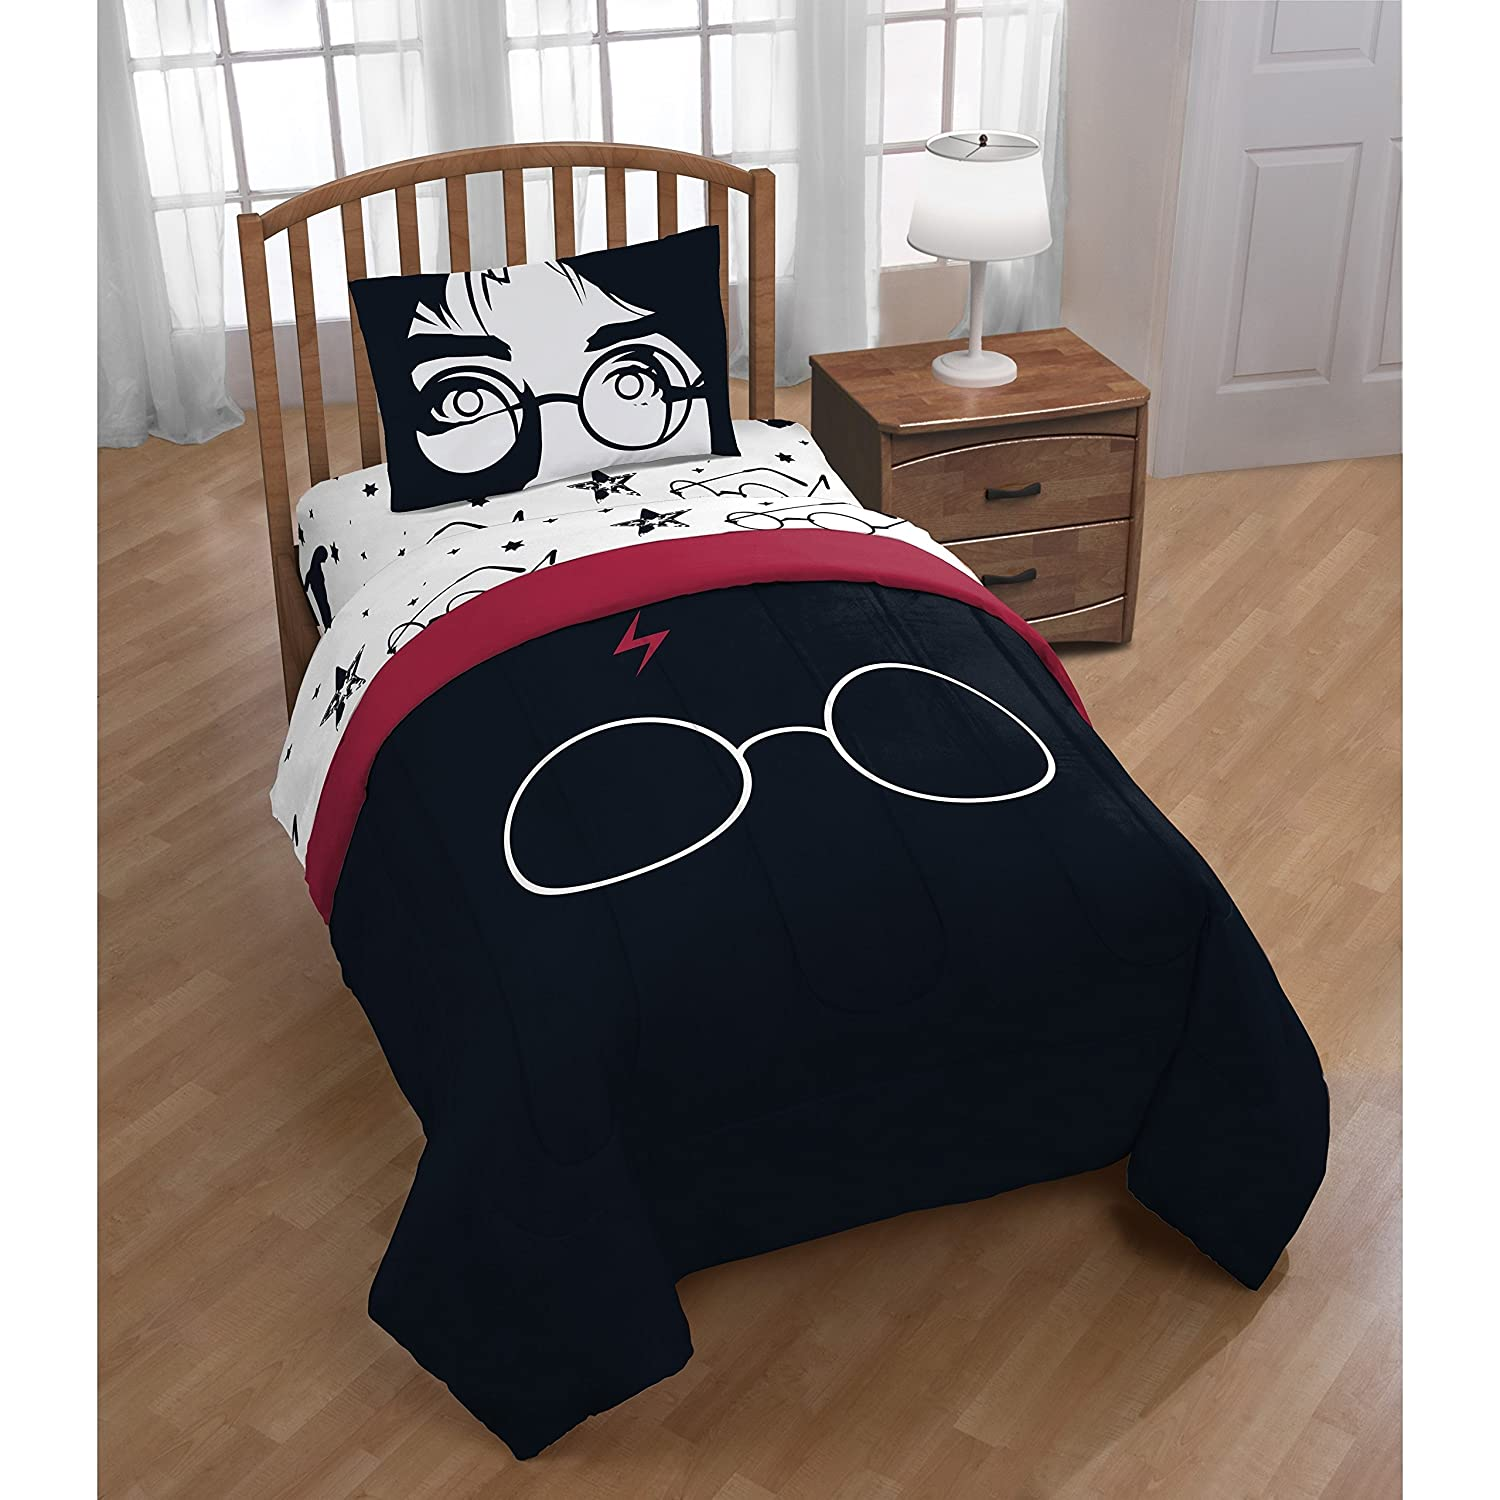 1 Piece Kids Black Red Harry Potter Oversized Comforter Twin/ Full, White Potter Glasses Head Mark Print Bedding Kids Fun Magical Harry Potter Movie Themed Potterheads Fan, Solid Reversible, Polyester